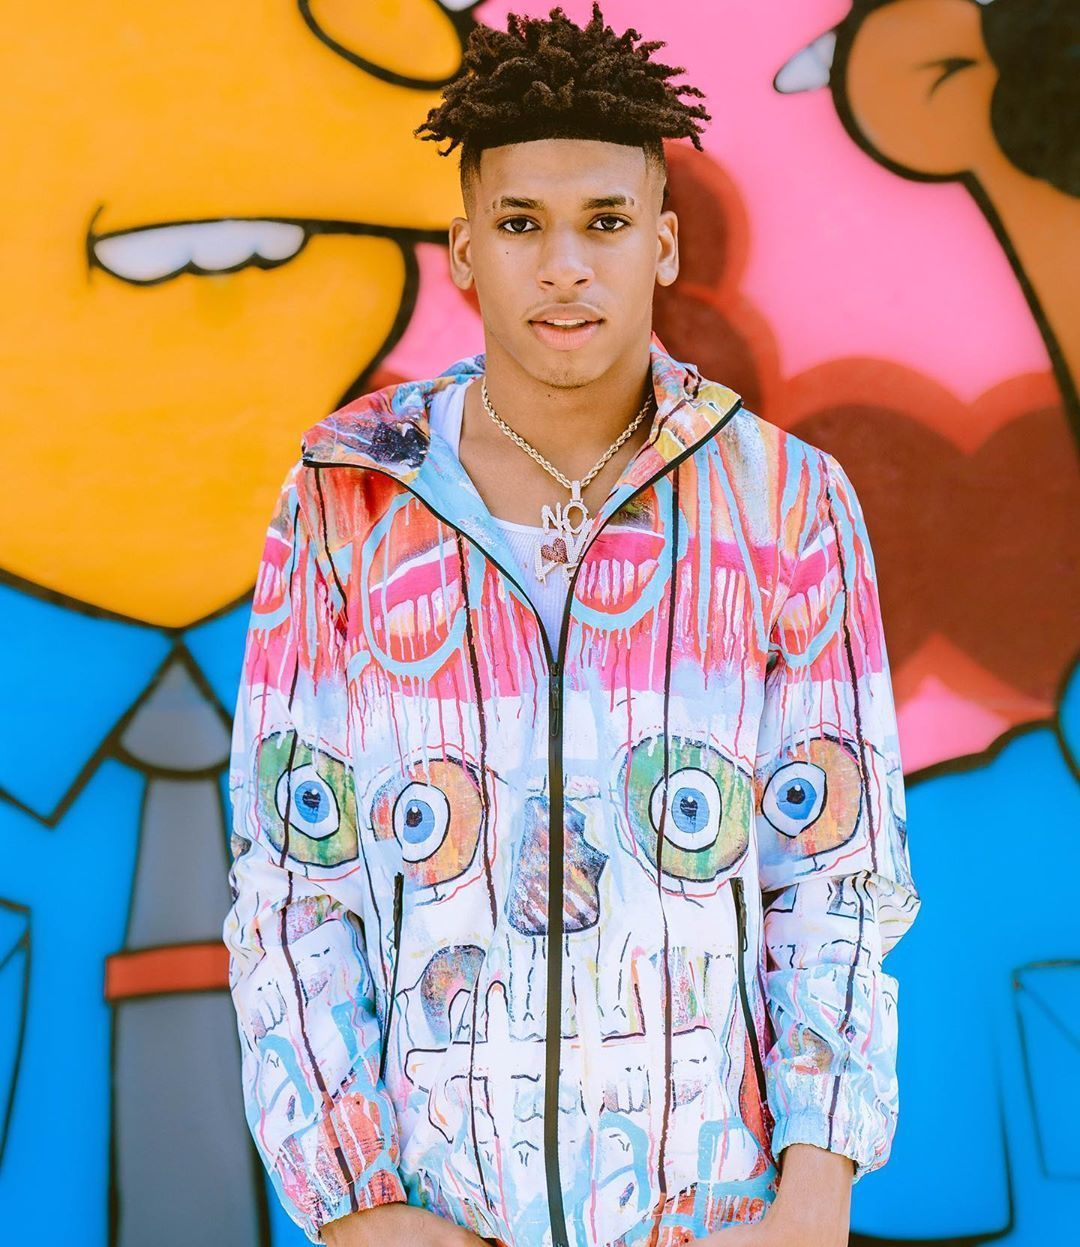 Blueface Roddy Ricch And Nle Choppa Wallpapers Wallpaper Cave